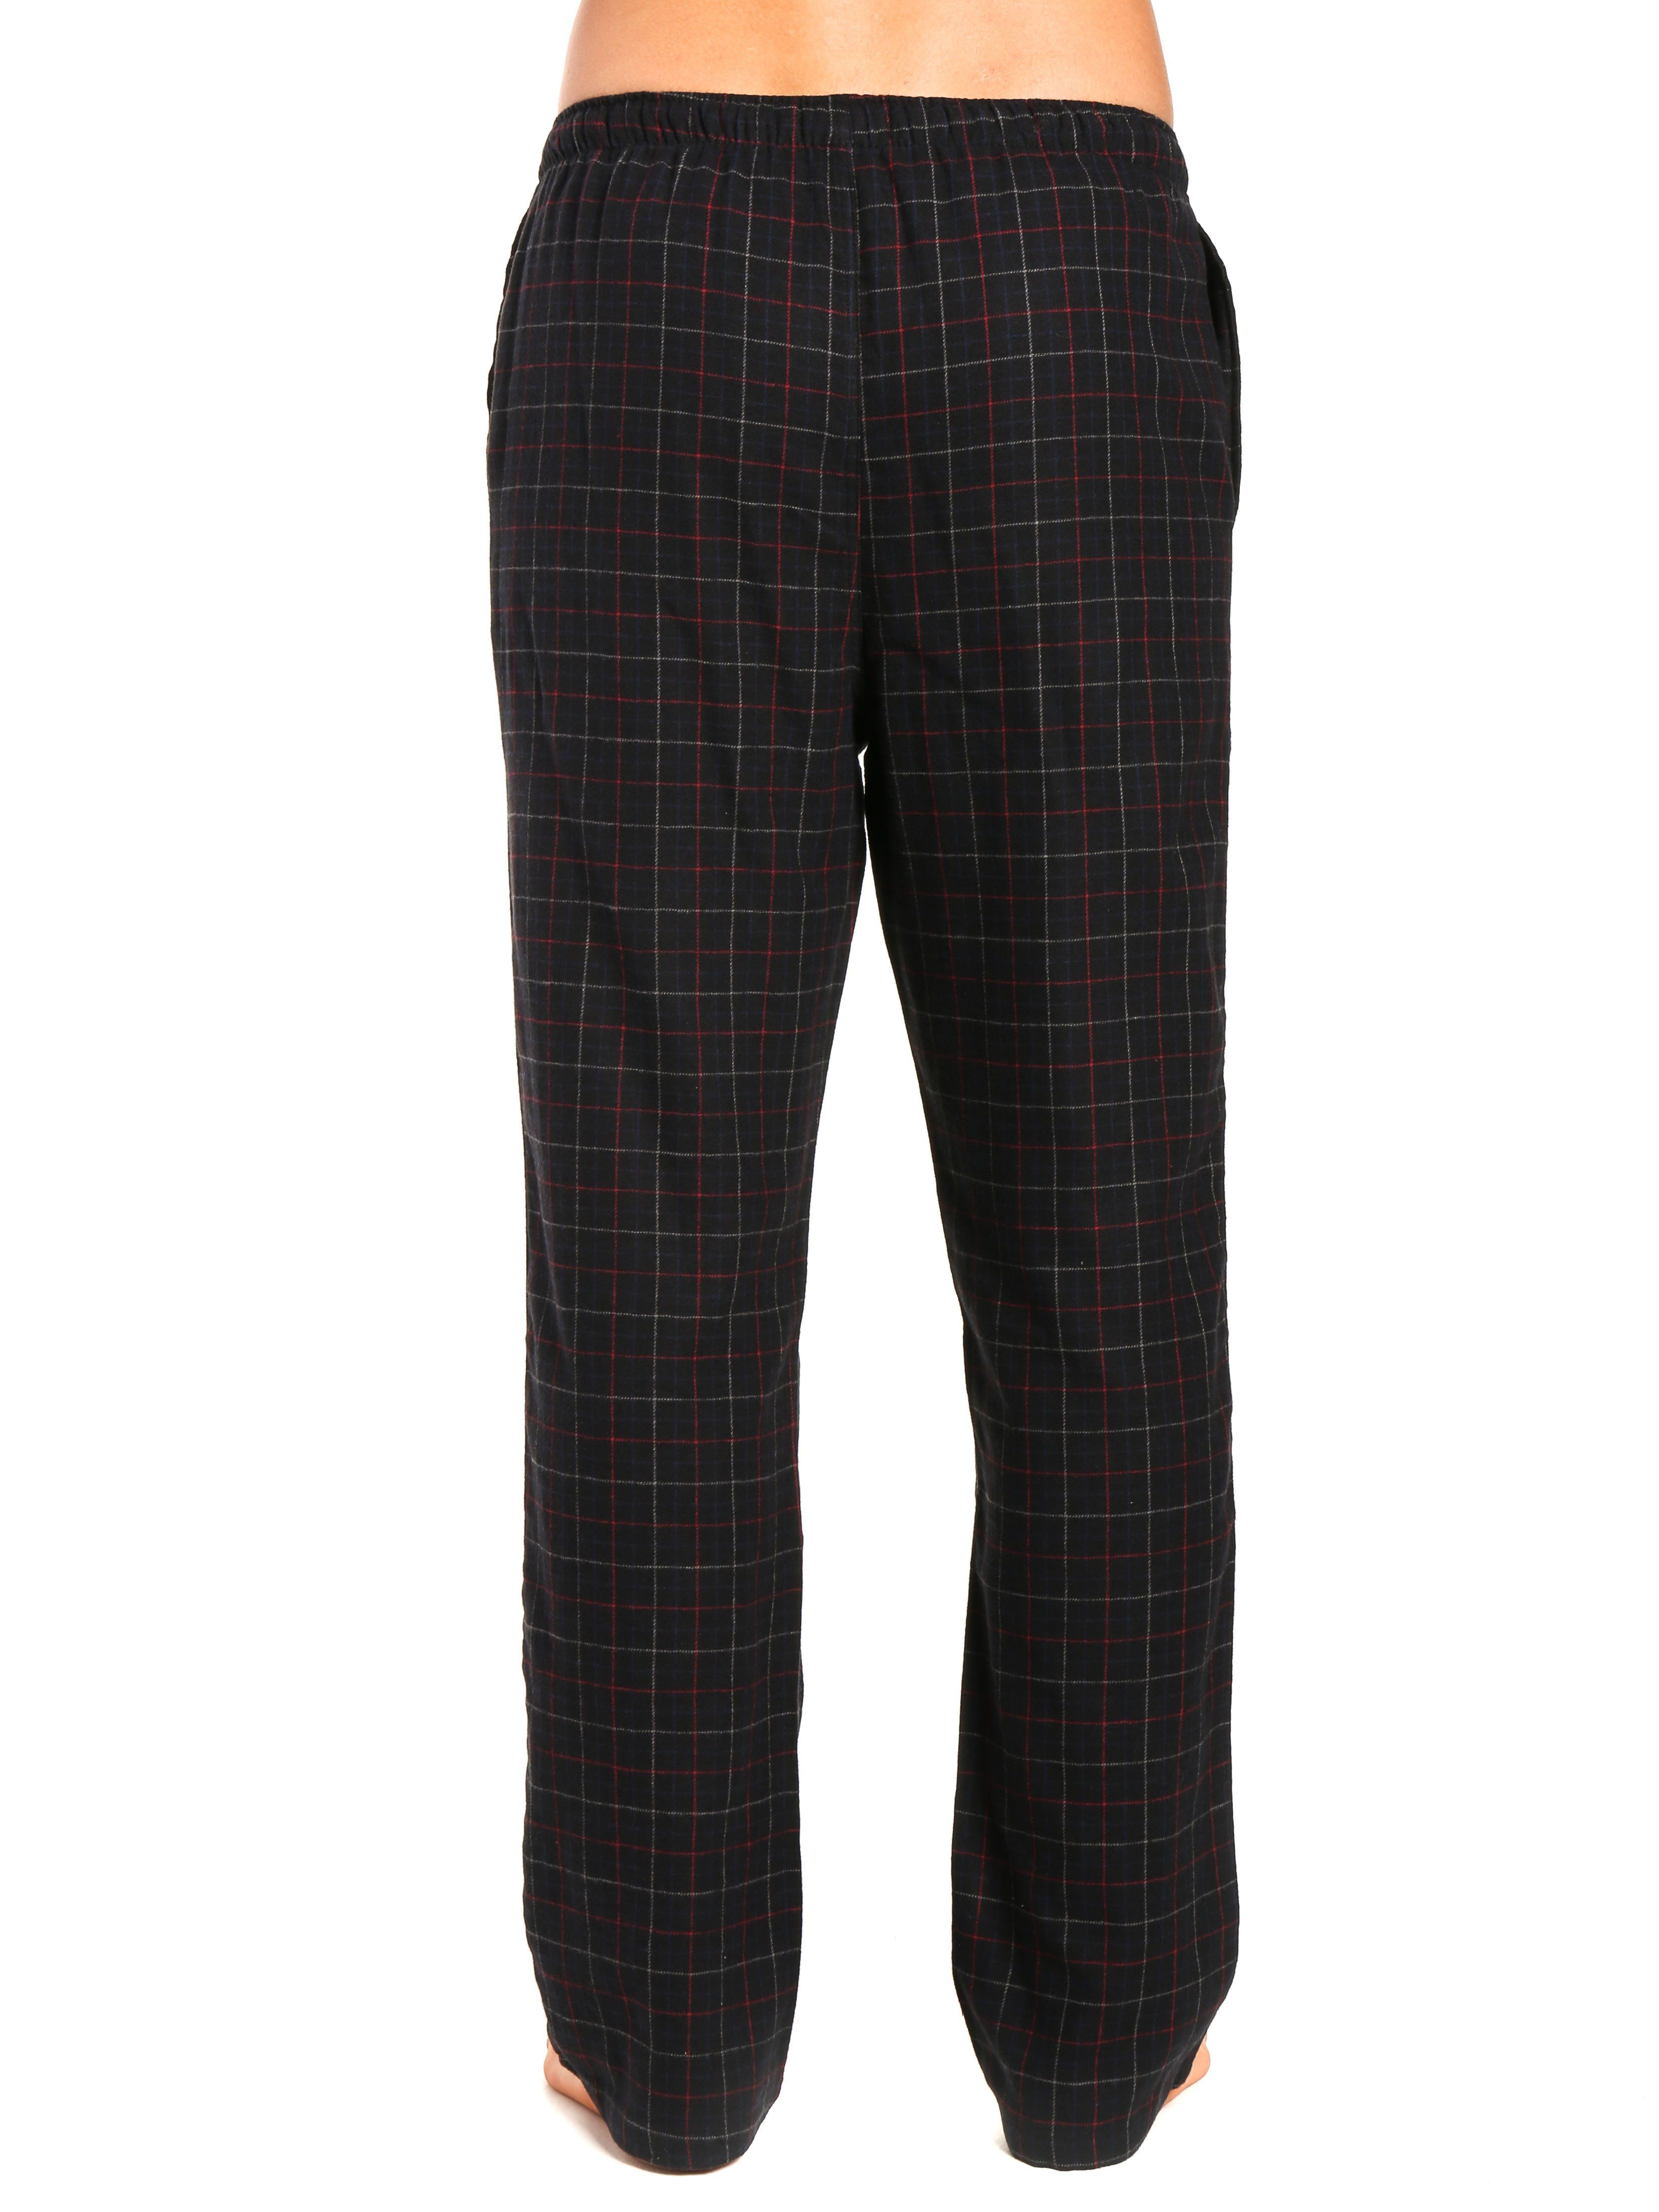 Plaid Black-Multi